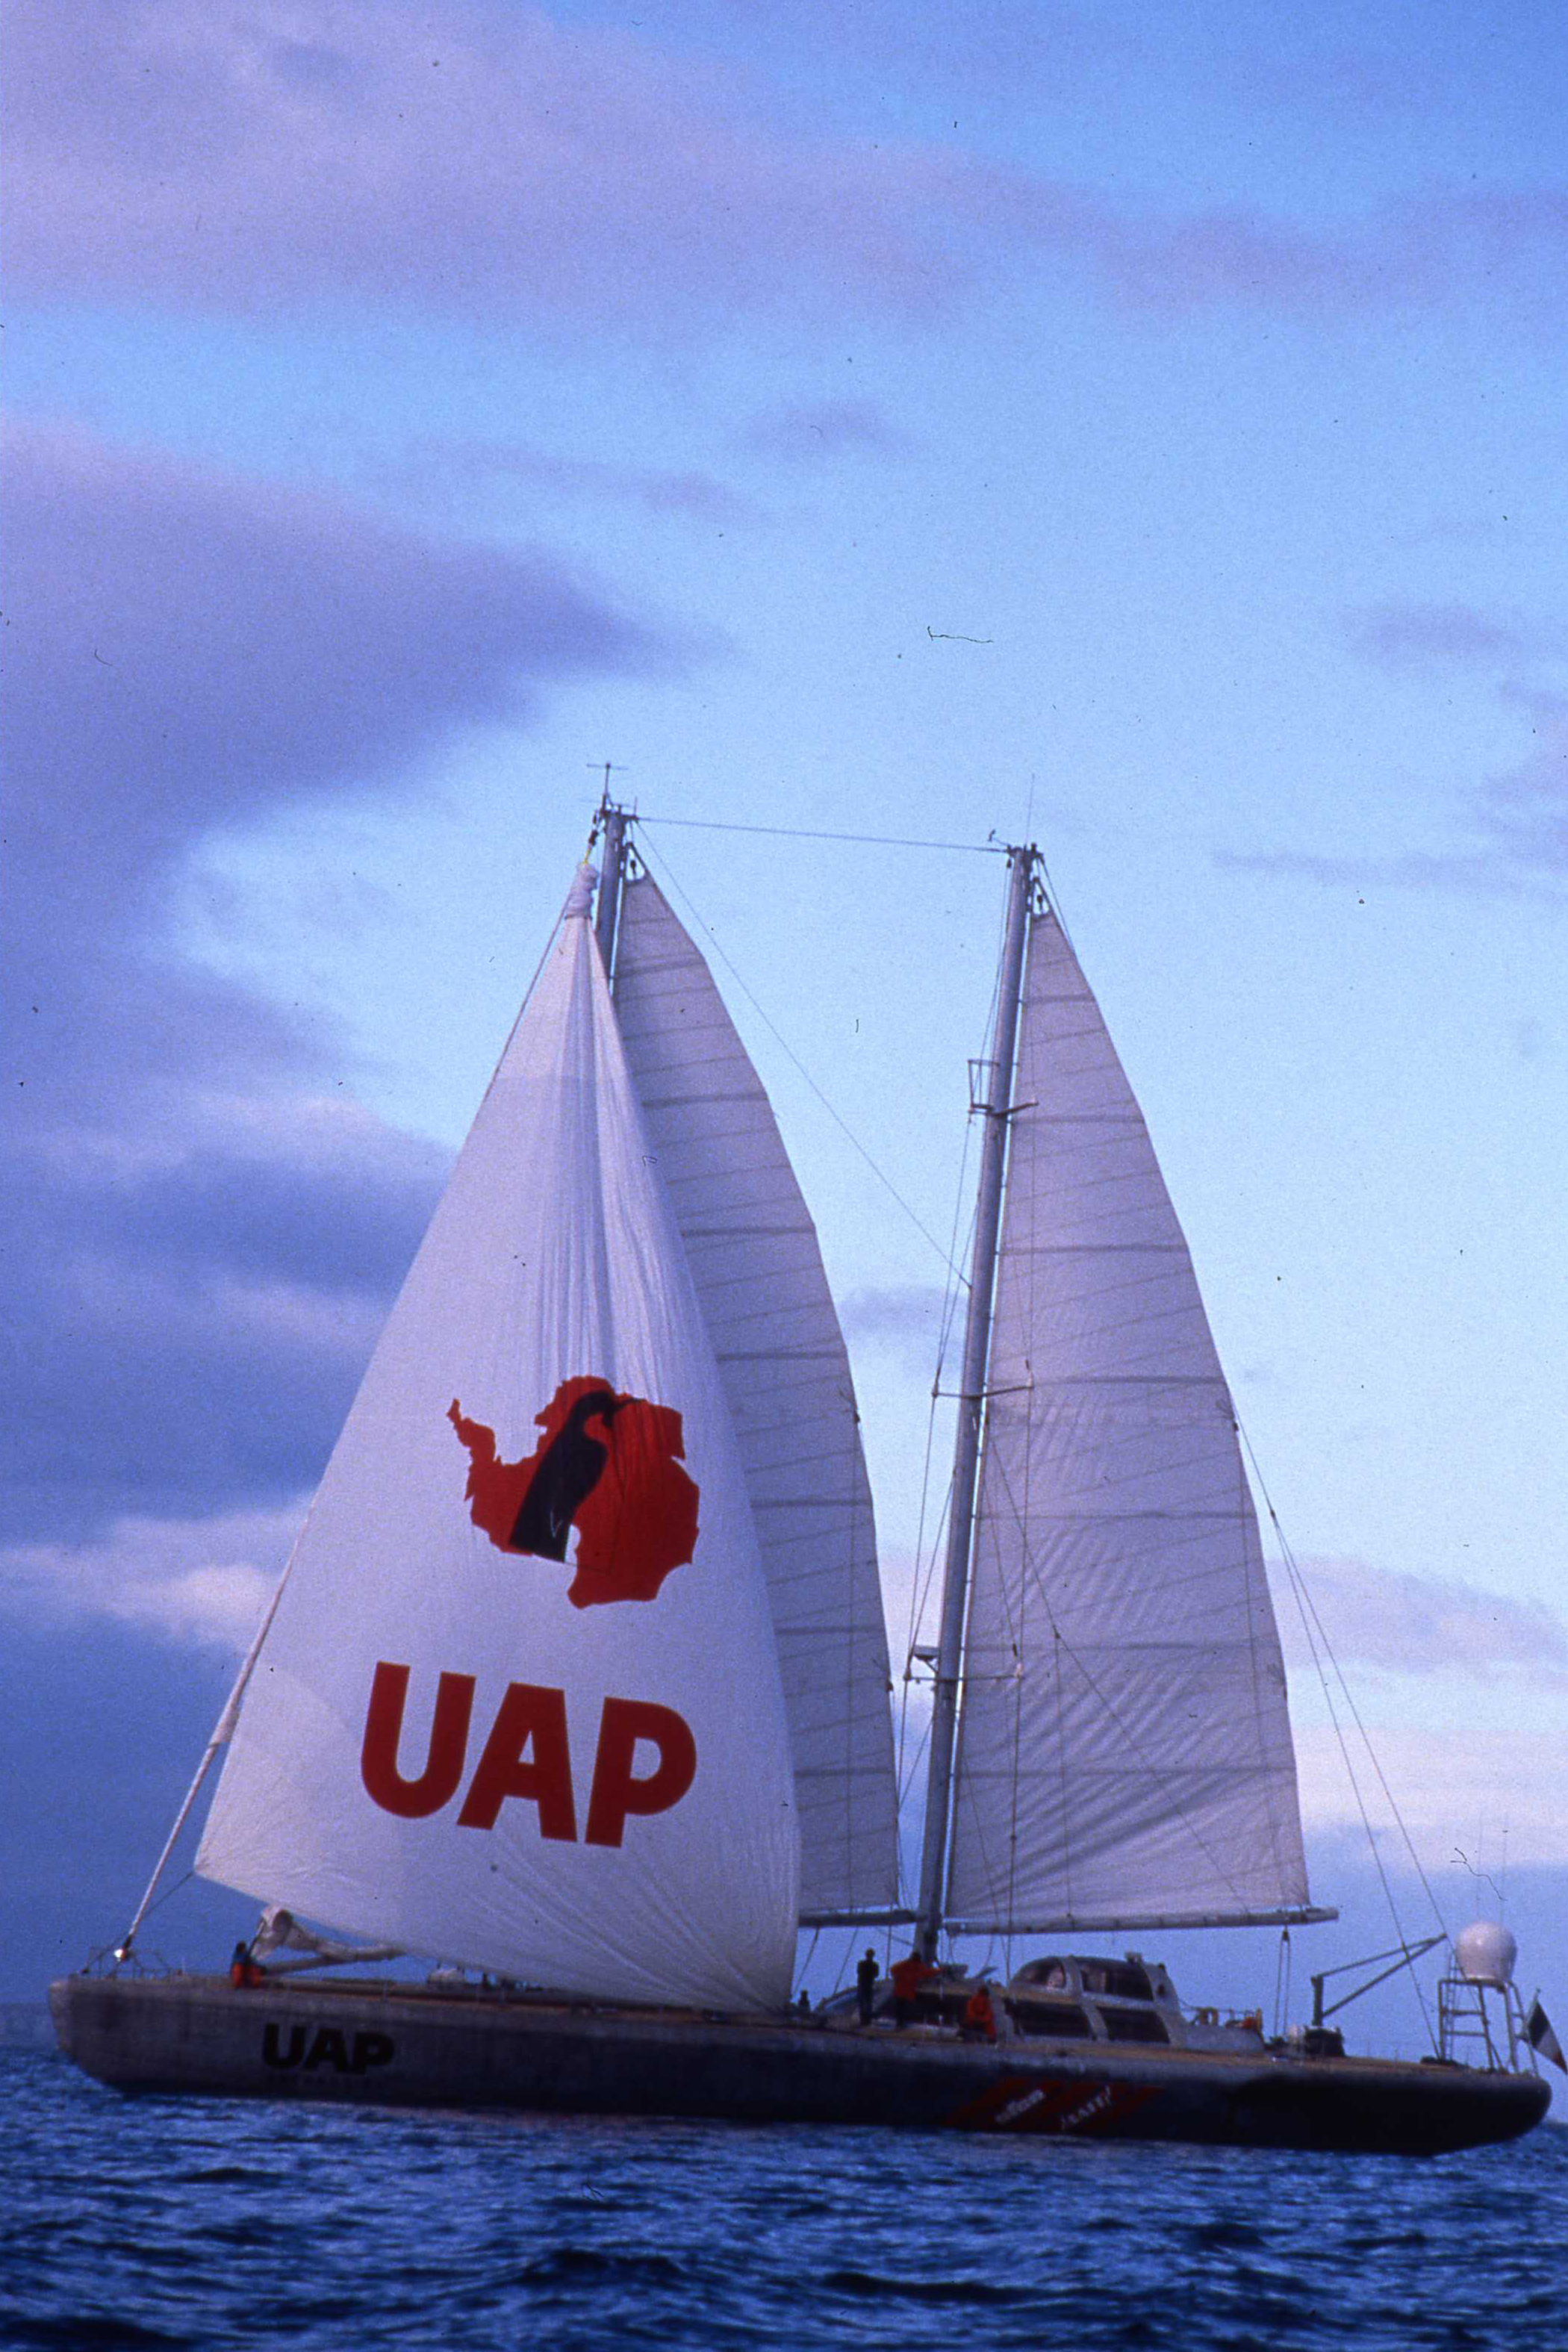 The expedition ship UAP under full sail. ©Will Steger, by Francis Latreille